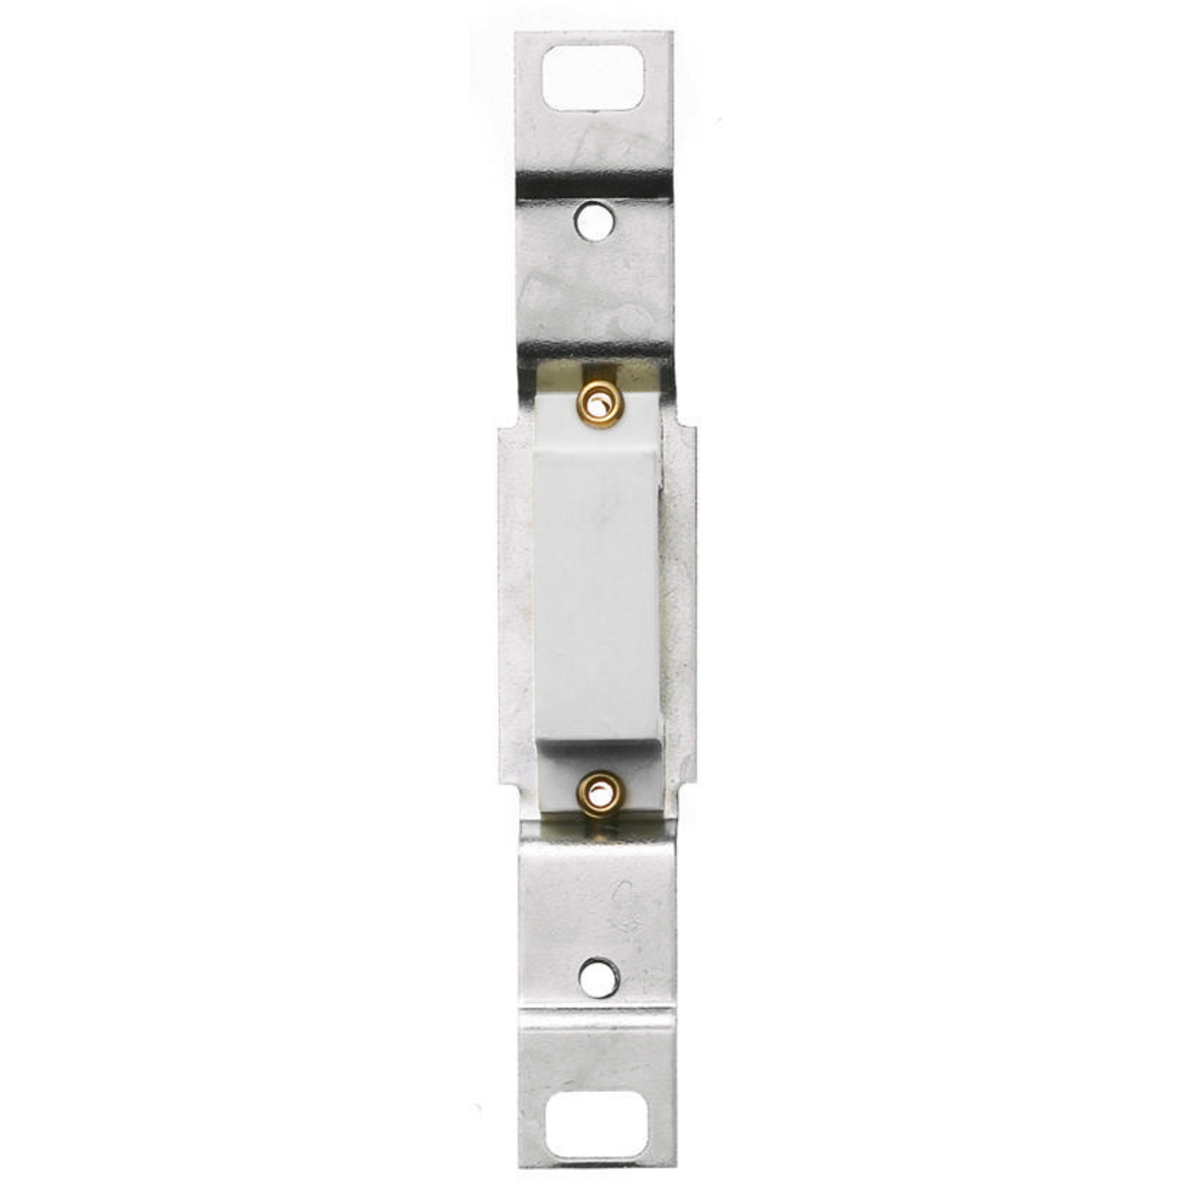 HUBBELL WIRING DEVICES Wallplates, , RA756W